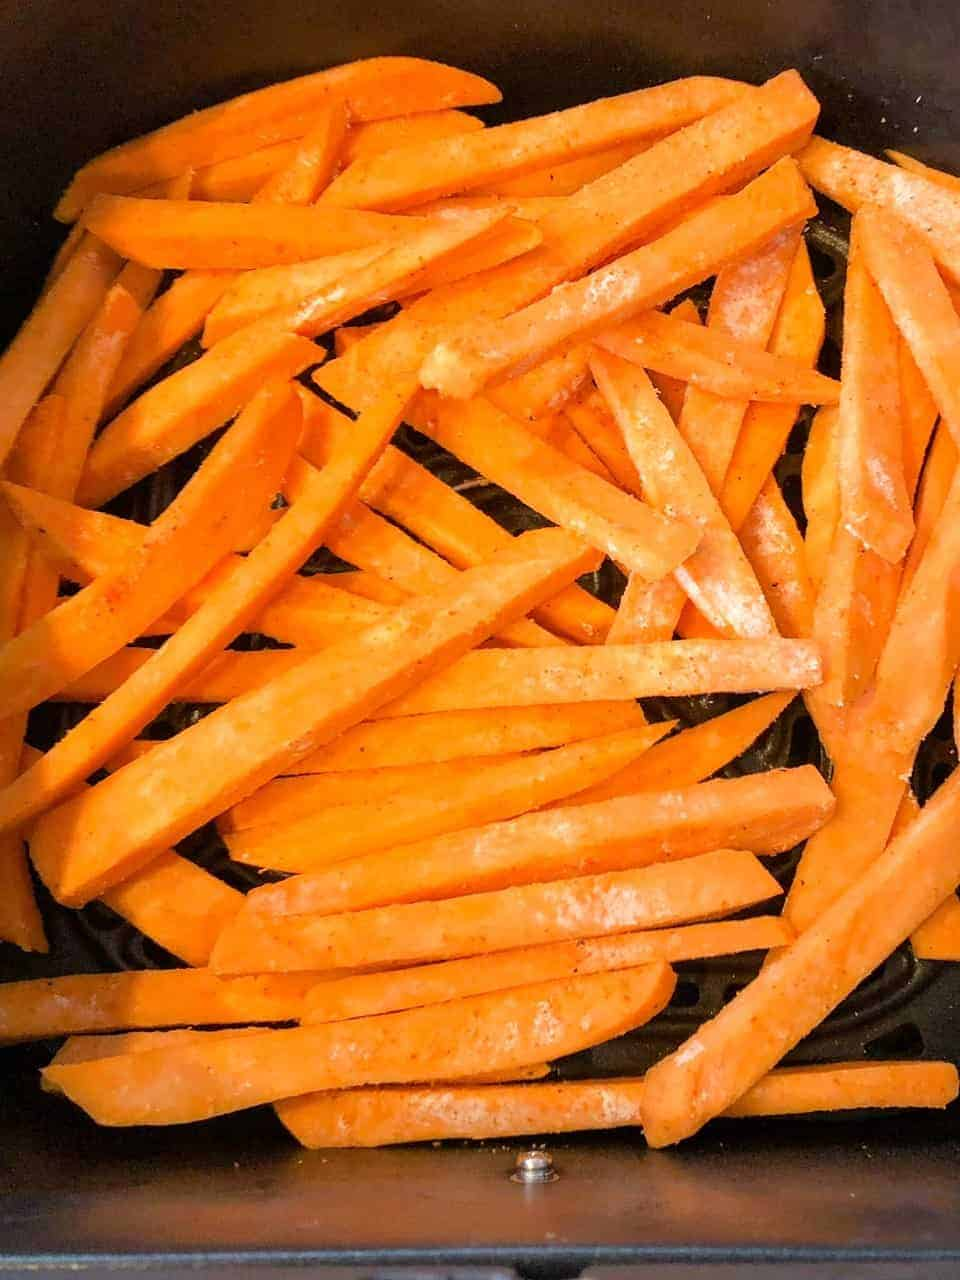 Sweet potato fries in the basket of an air fryer